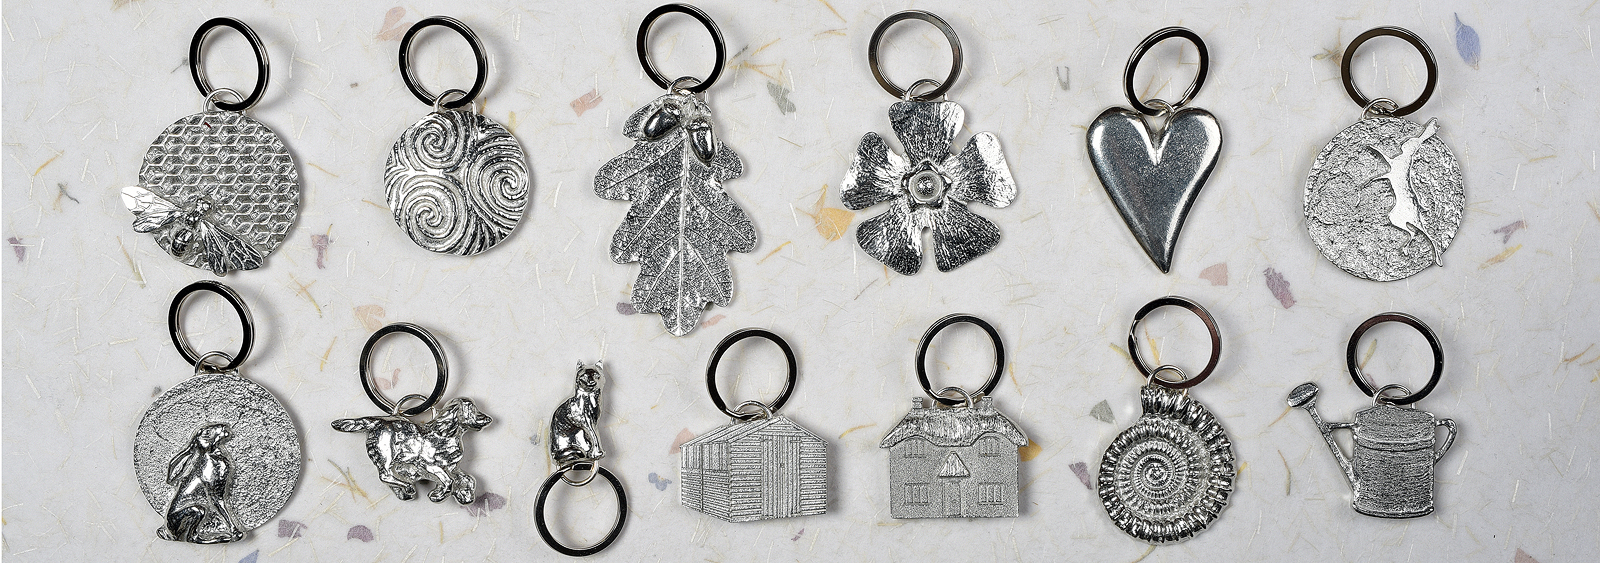 English pewter key ring gifts collection by Glover and Smith